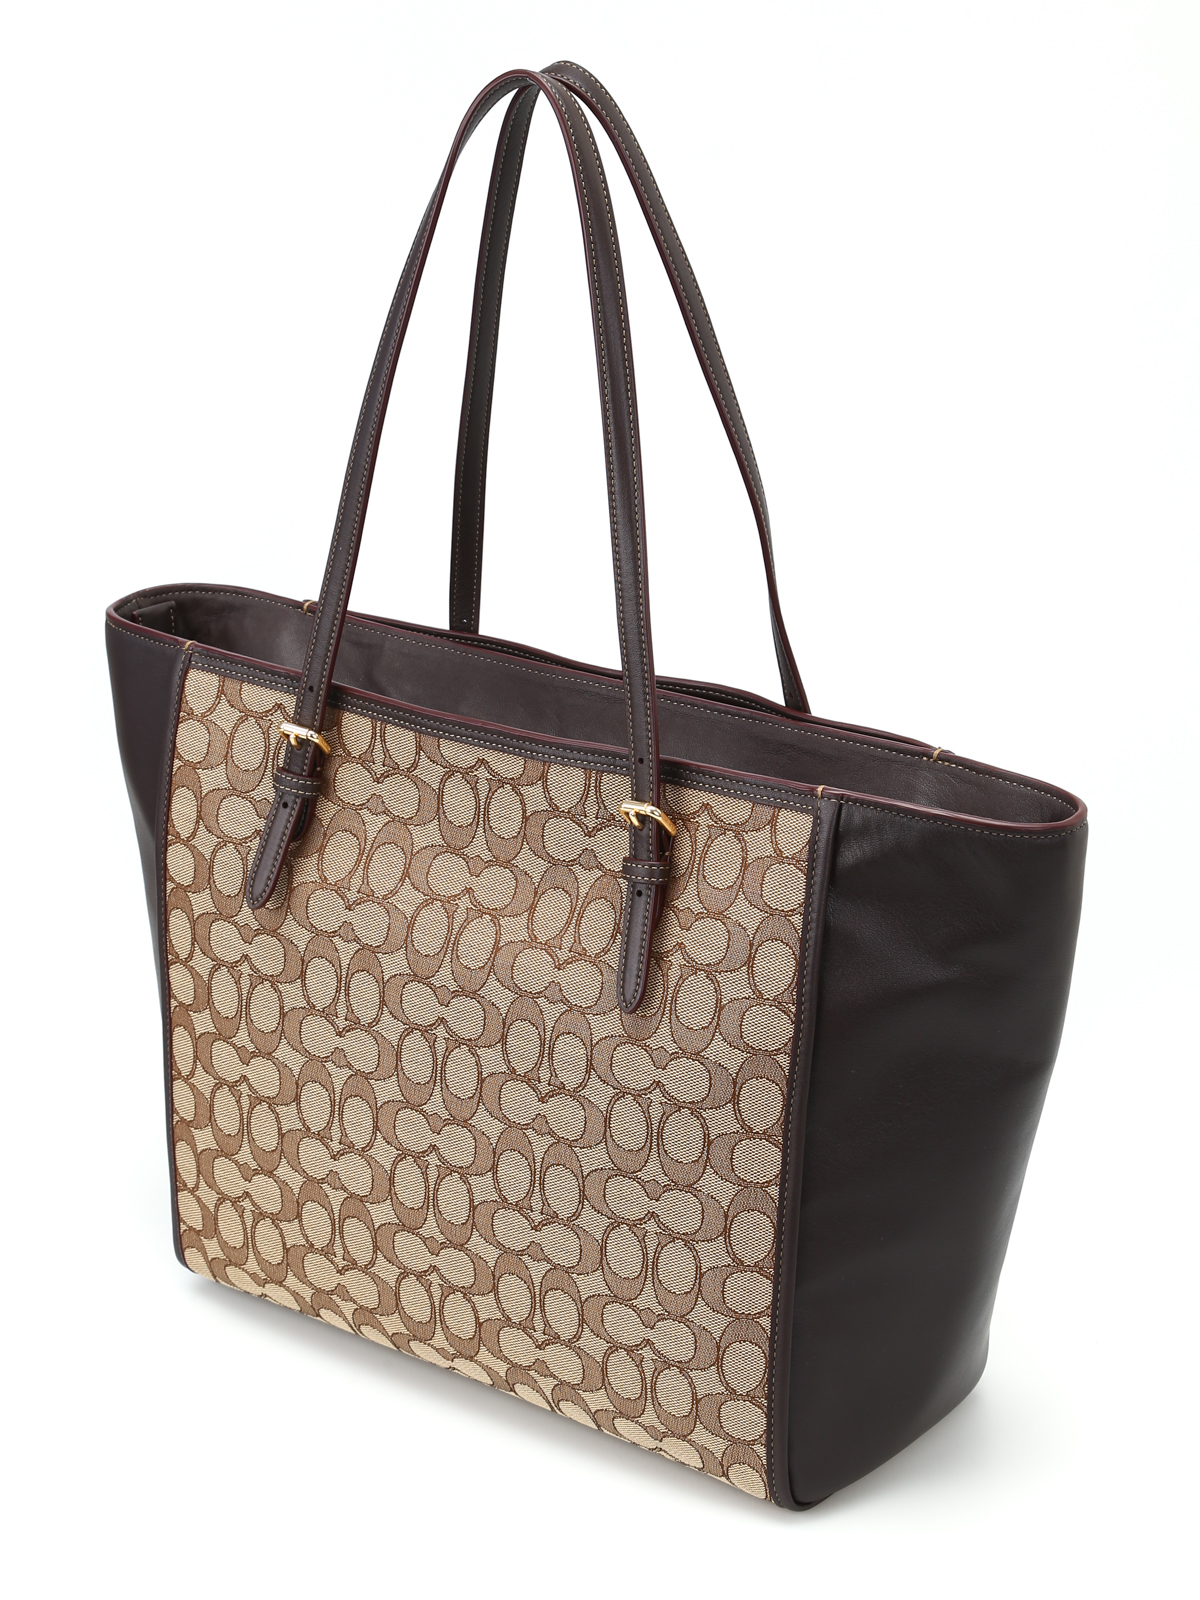 8343f58ed1f0 ... spain ikrix coach totes bags cc fabric panels leather tote a4c3b 20d67  where to buy nwt coach f23284 tote bag smooth park leather carryall british  tan ...